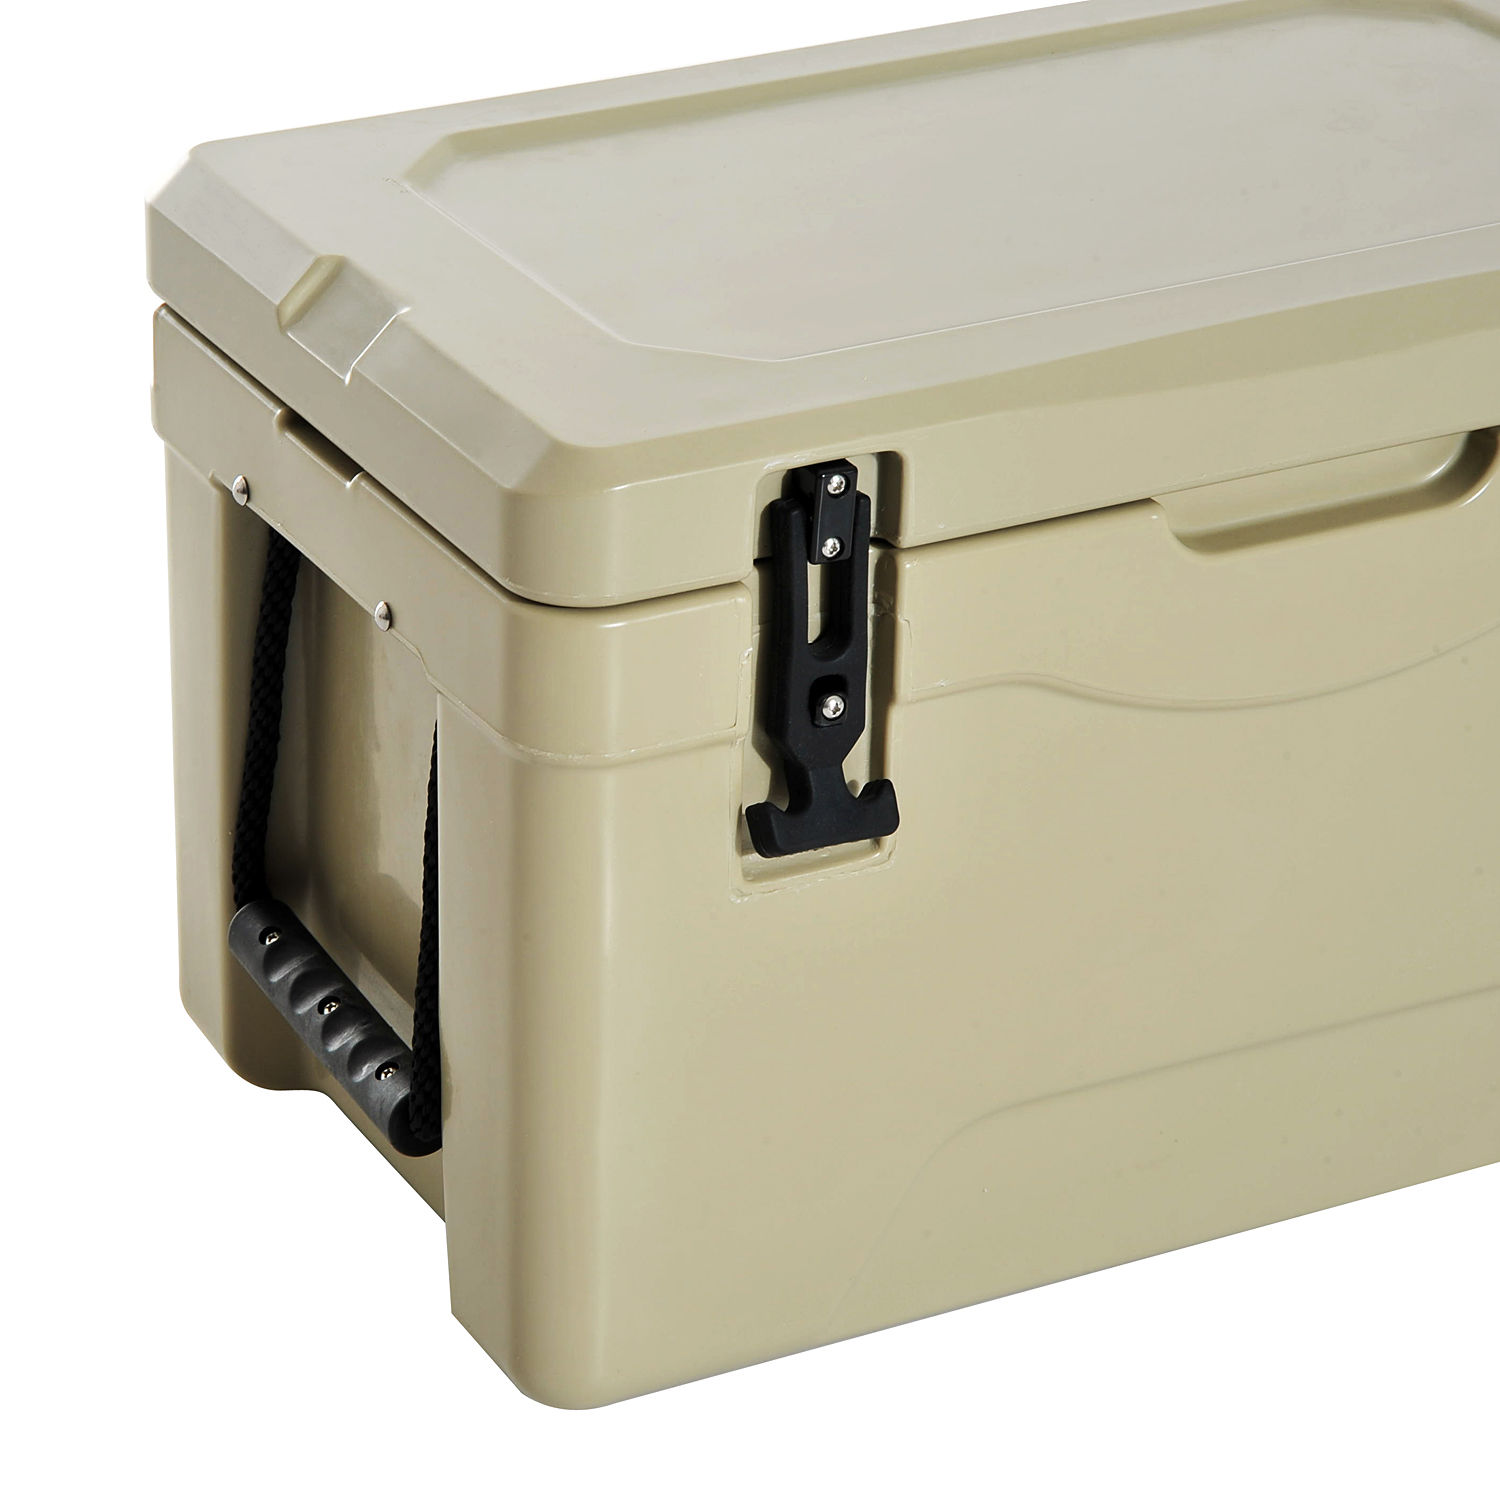 food rotomolded cooler ice chest box cold drinks camping hiking w handle ebay. Black Bedroom Furniture Sets. Home Design Ideas